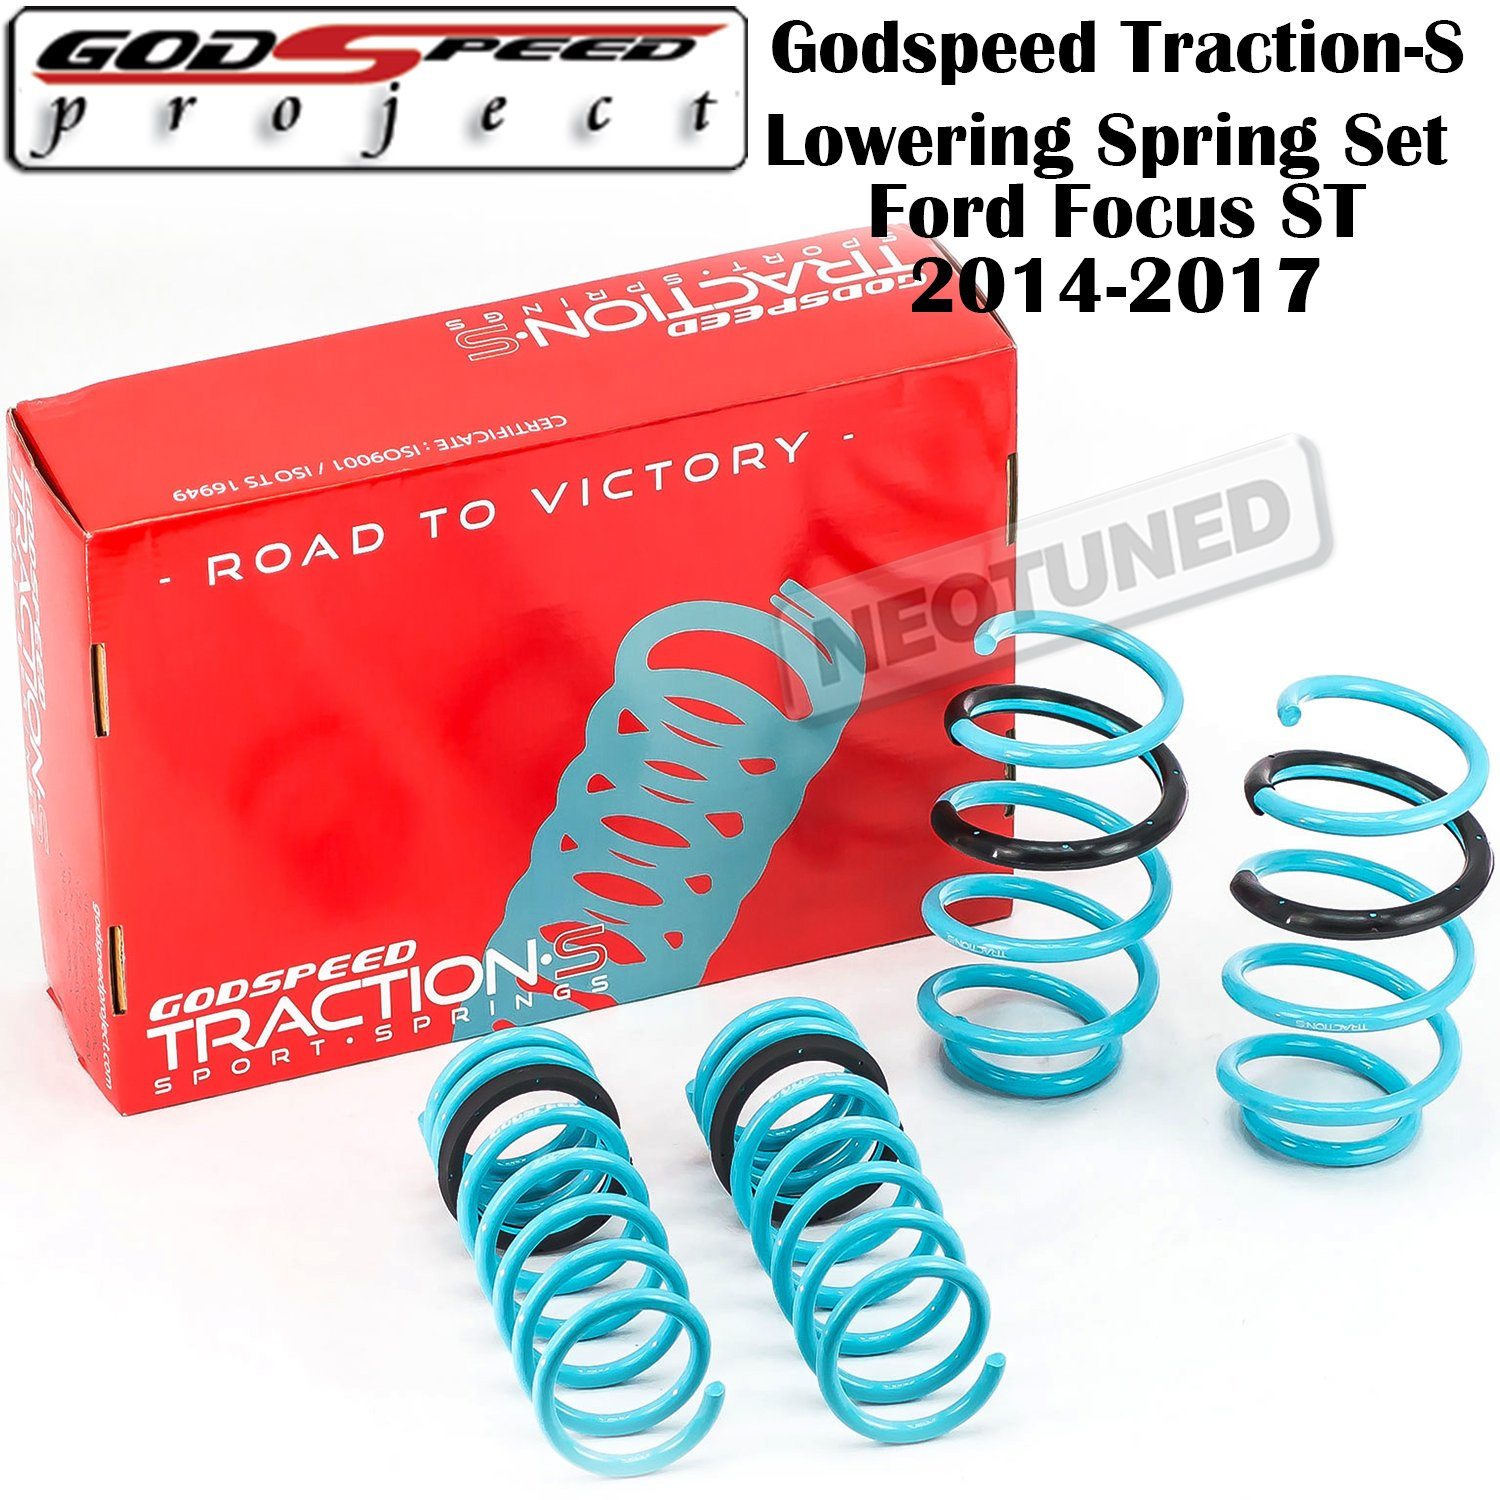 Godspeed Ls Ts Fd 0005 Traction S Lowering Spring Set 2014 Ford Focus Suspension For St 2011 2015 Gsp Kit Automotive